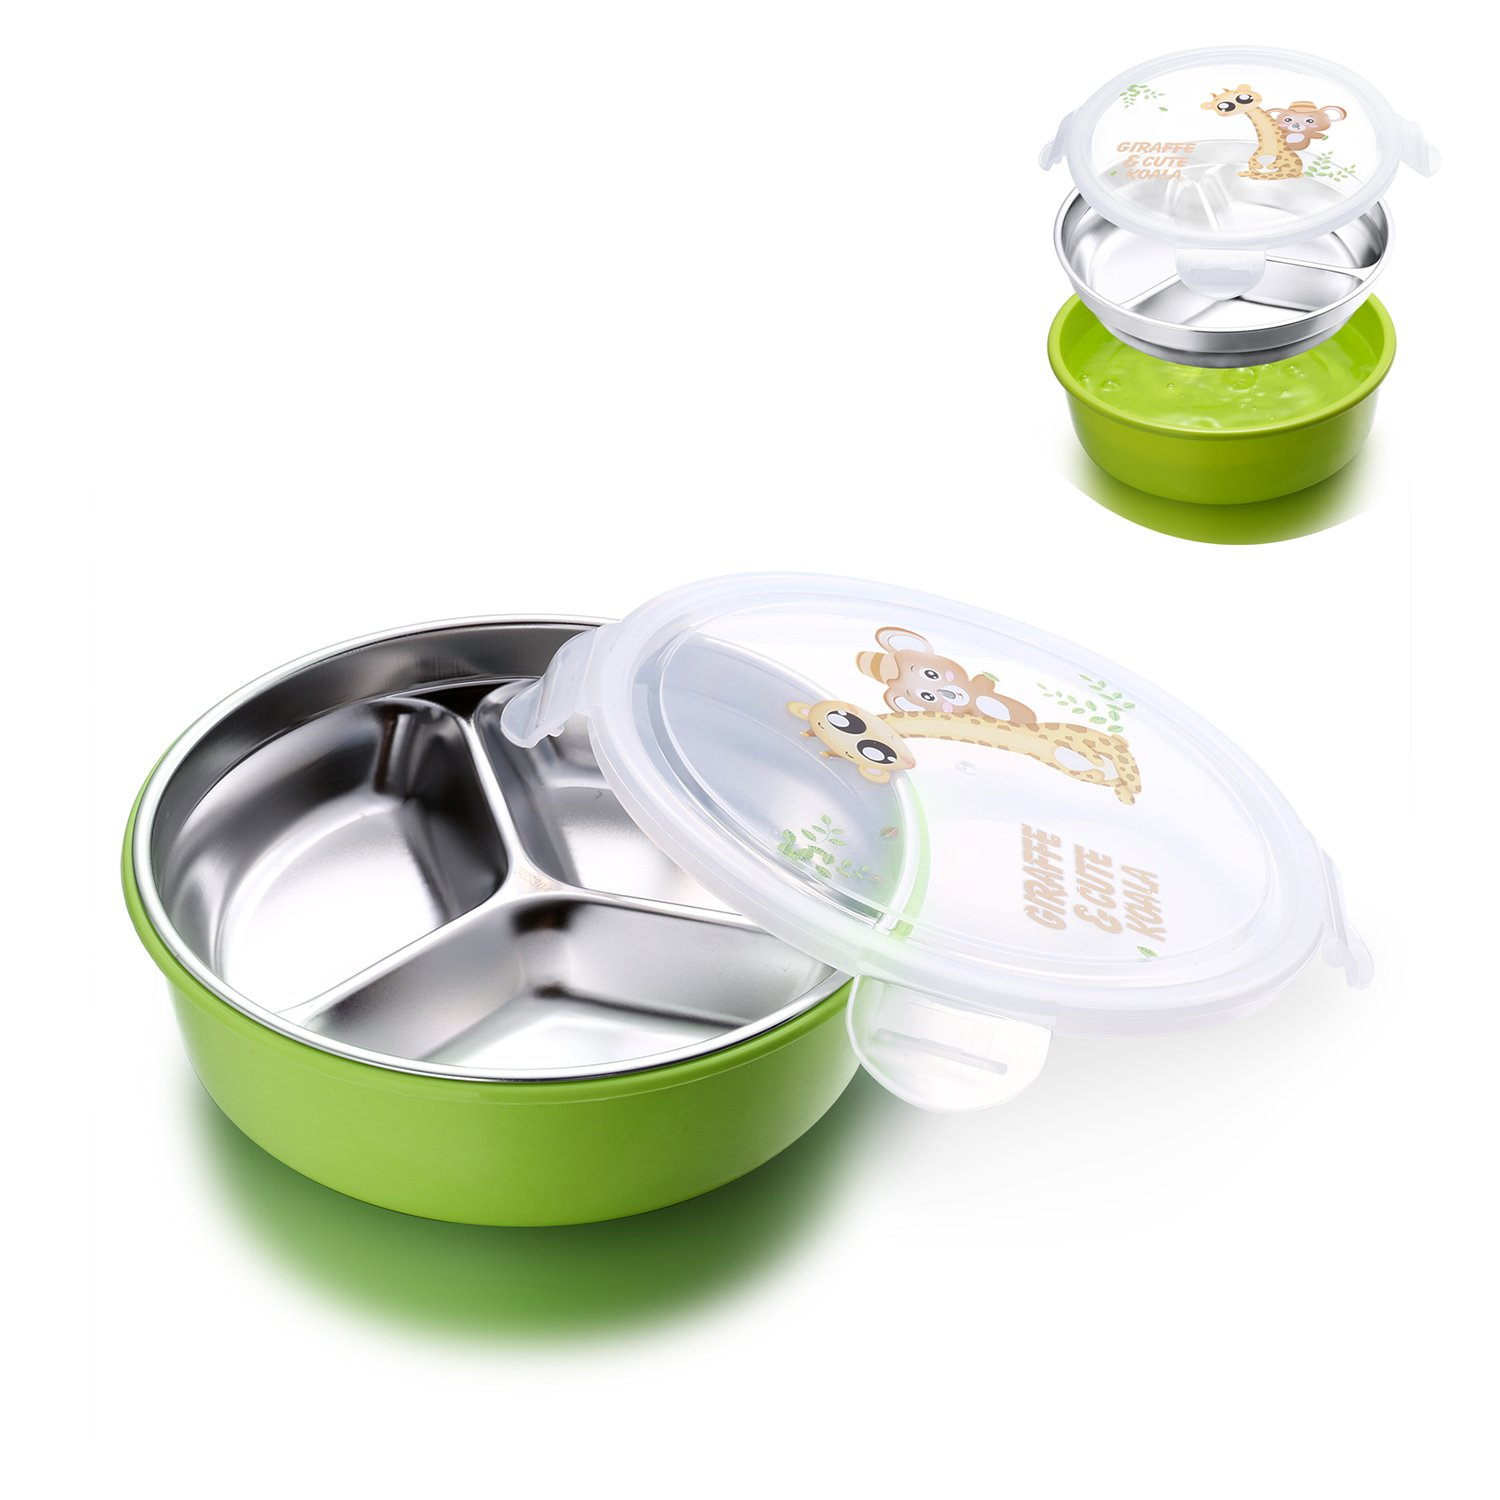 IRmm Top Rated Stainless Steel Lunch Box for kids adults, Salad Bowl,Fruit Bowl,Leak-Proof Food Storage Container (bento-green(small))